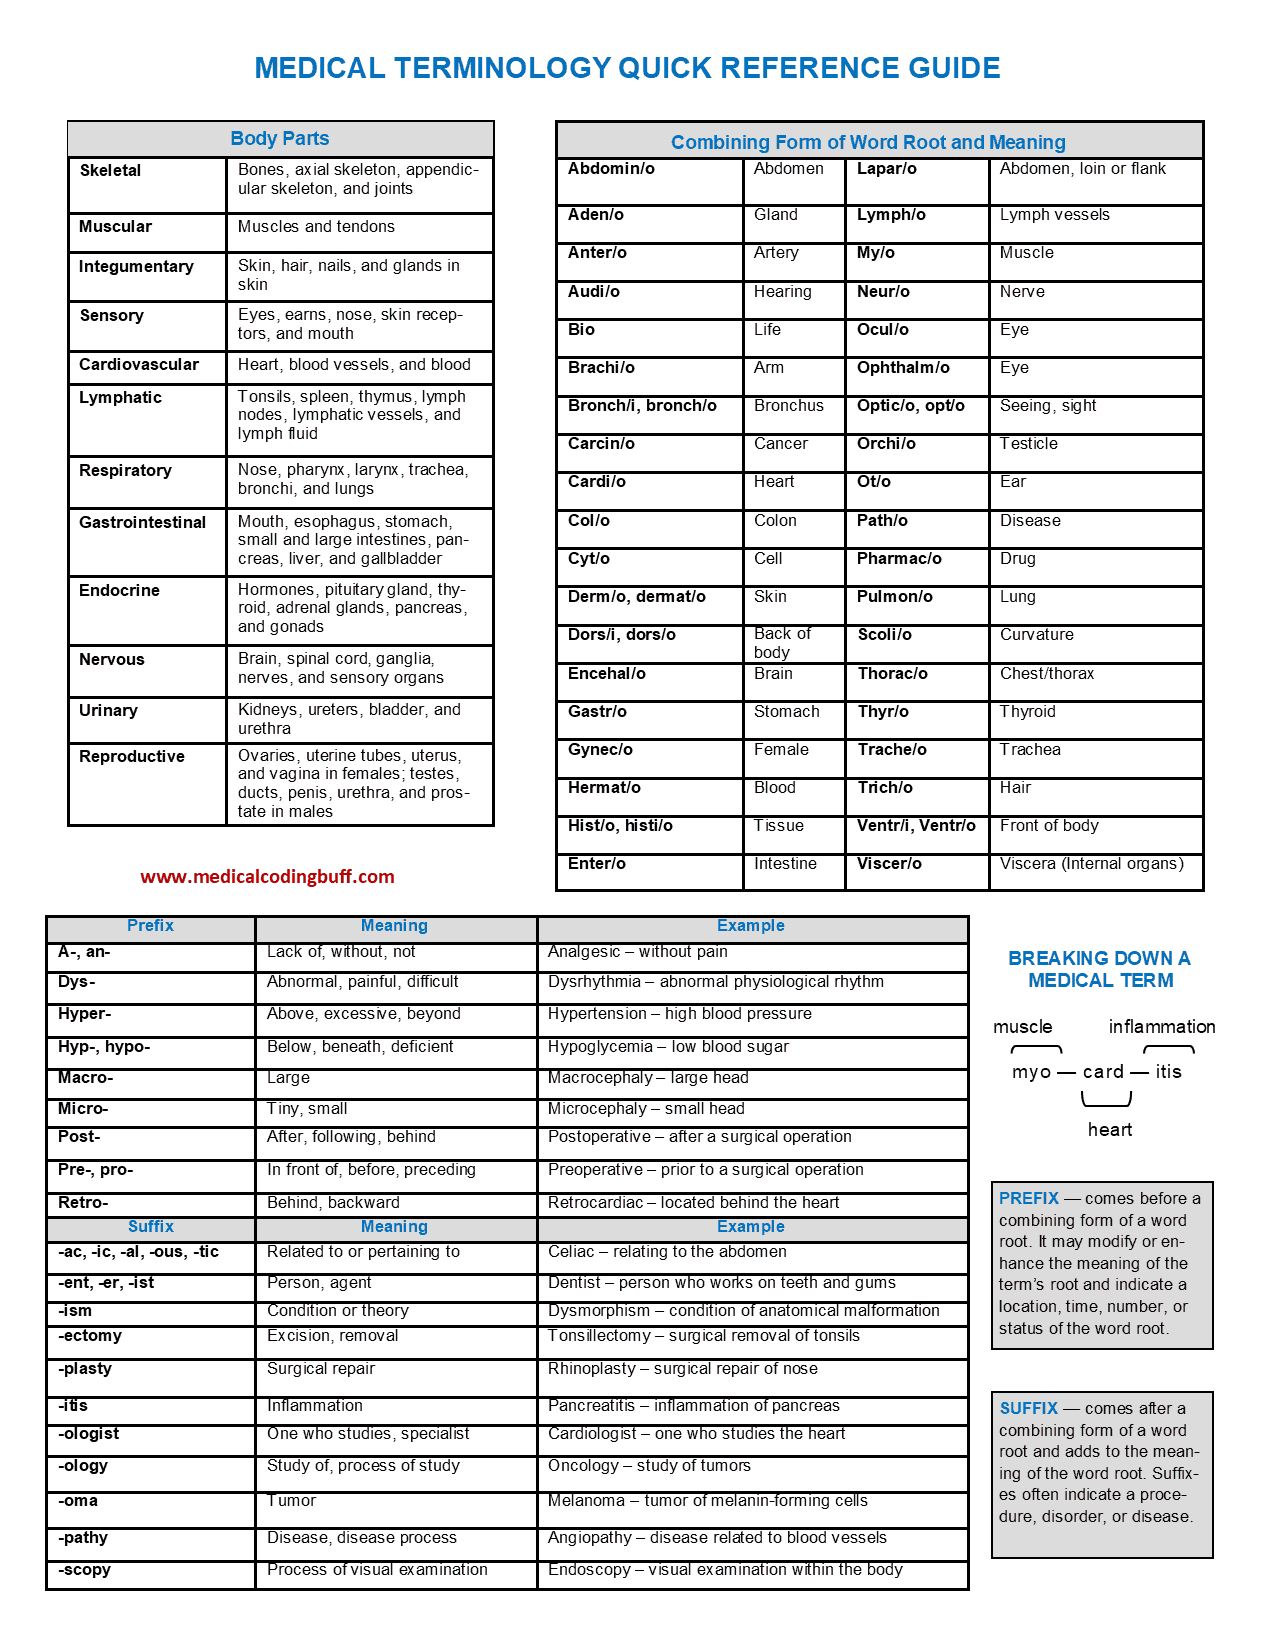 Medical Terminology Quick Reference Guide